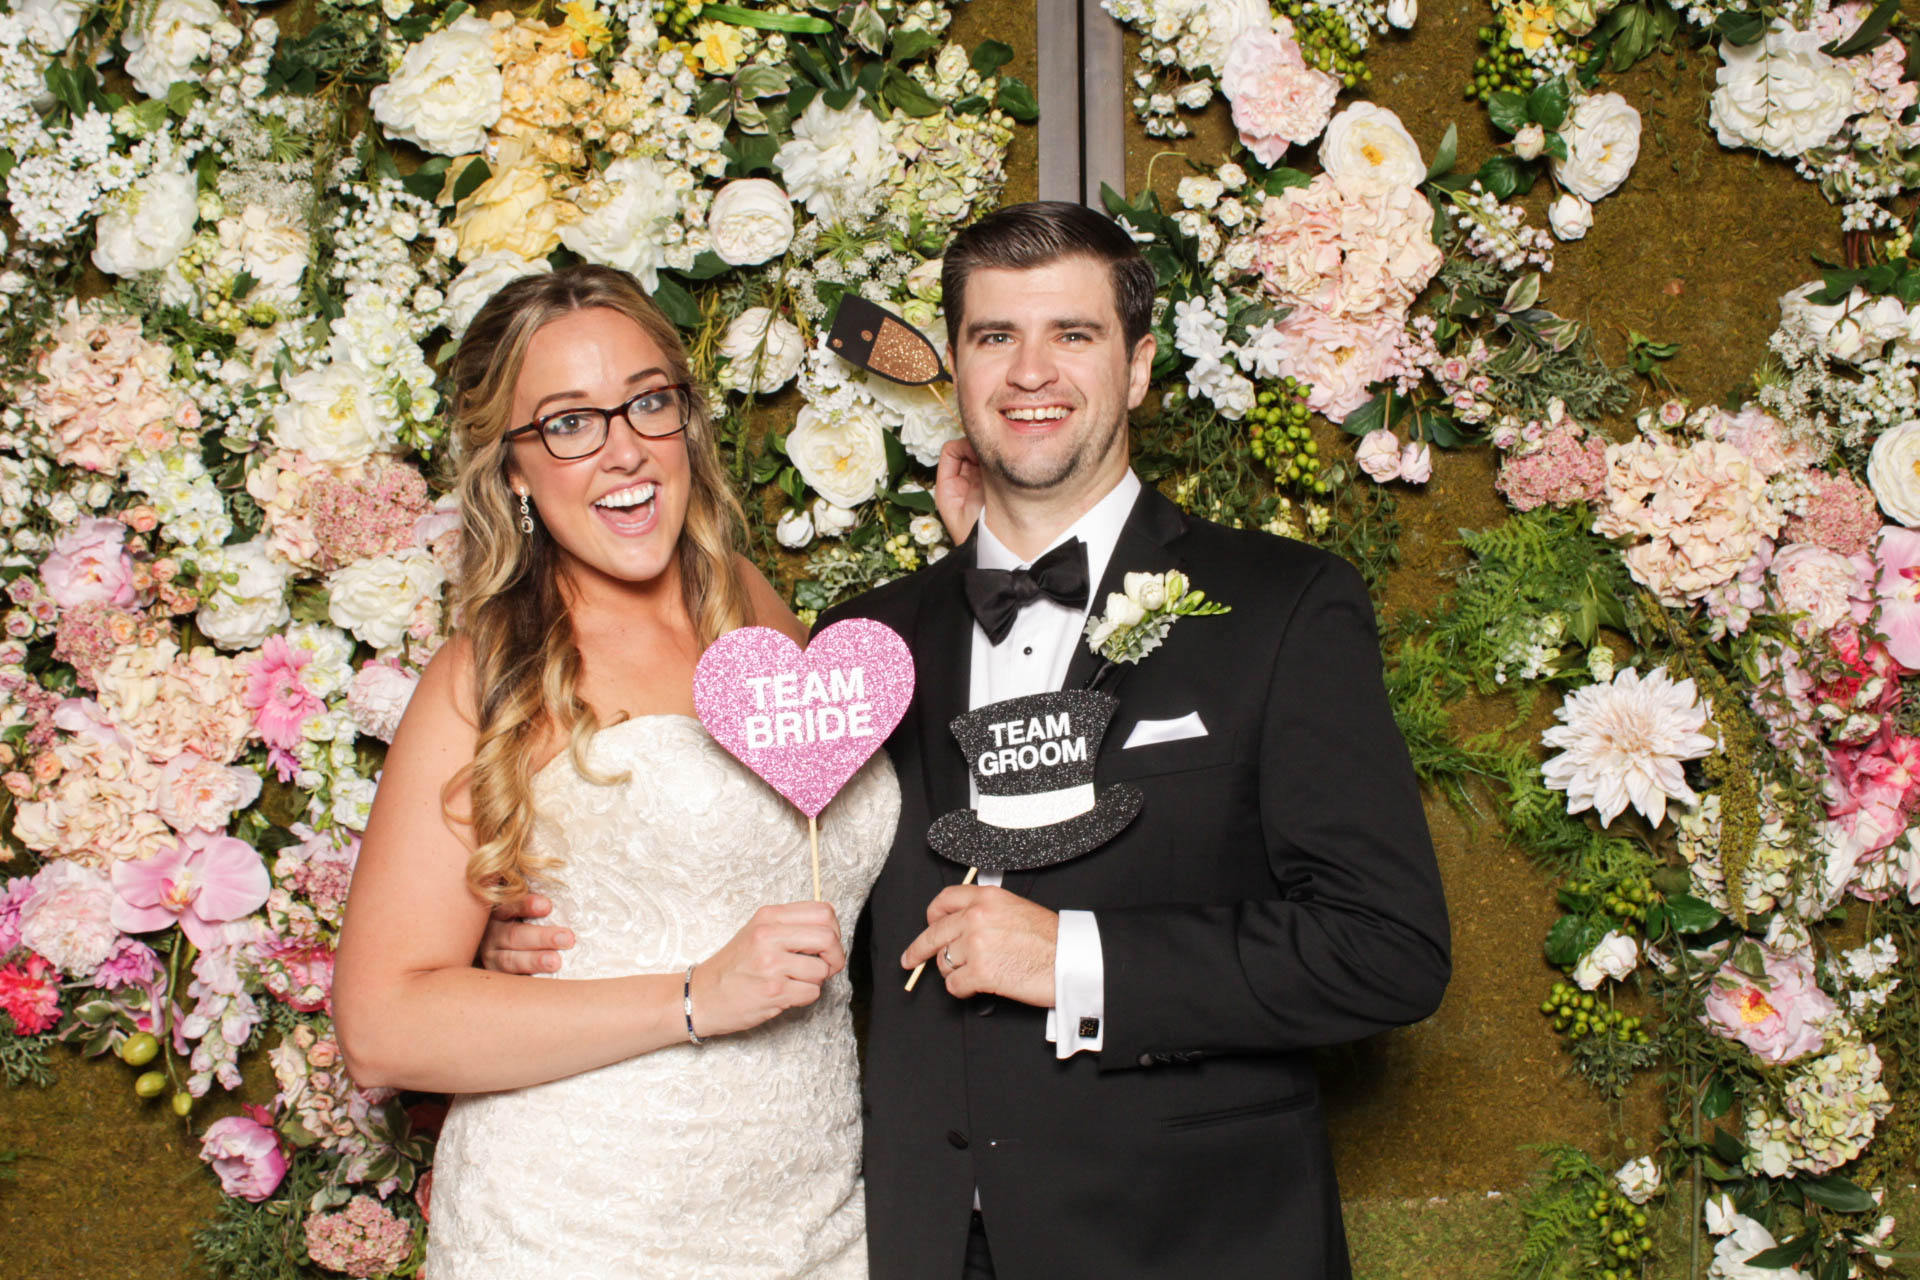 Wedding Photo Booth Rental Philadelphia